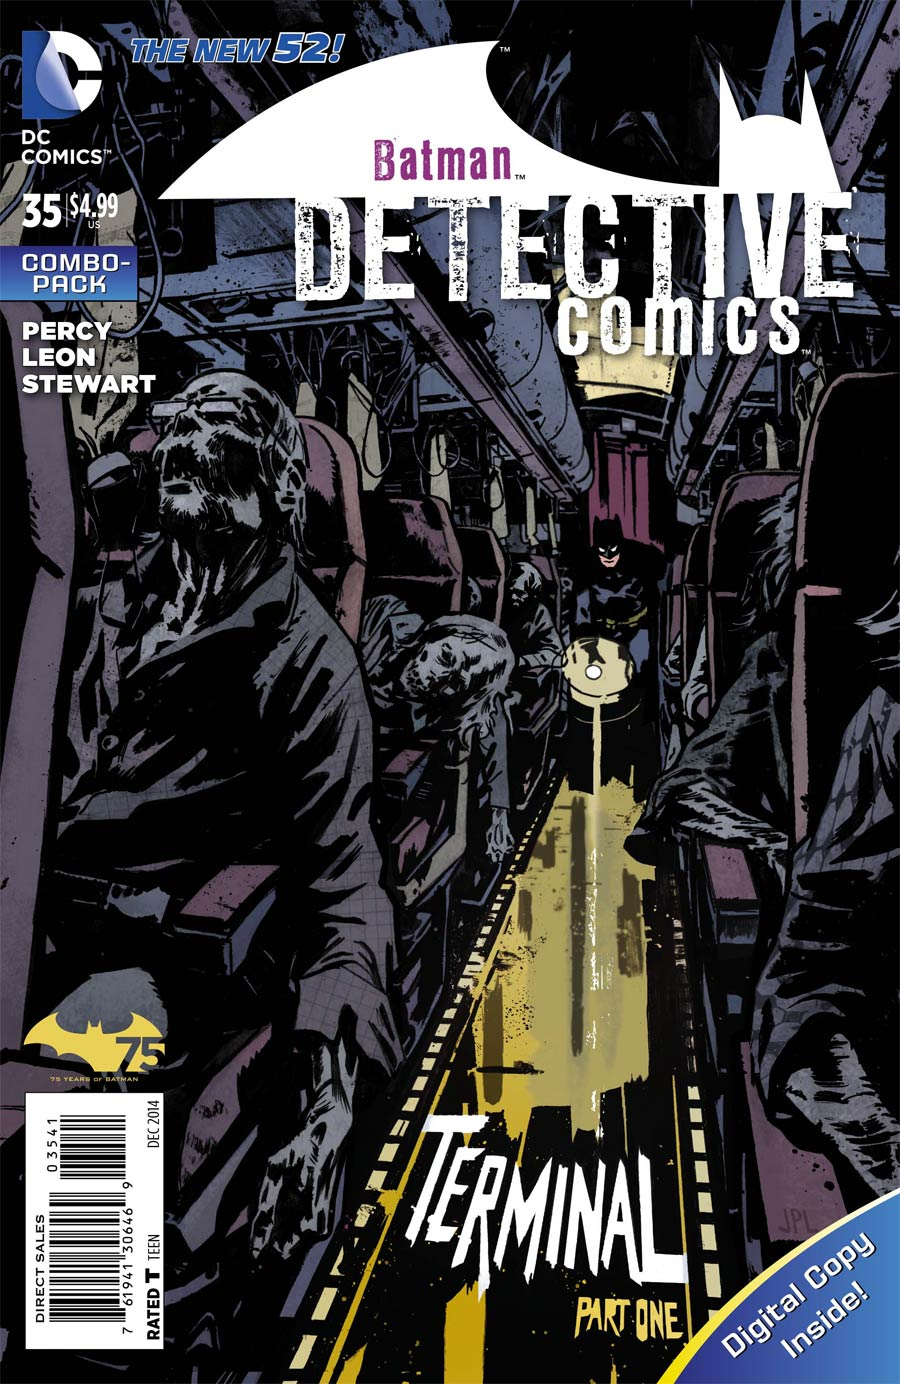 Detective Comics Vol 2 #35 Cover C Combo Pack With Polybag